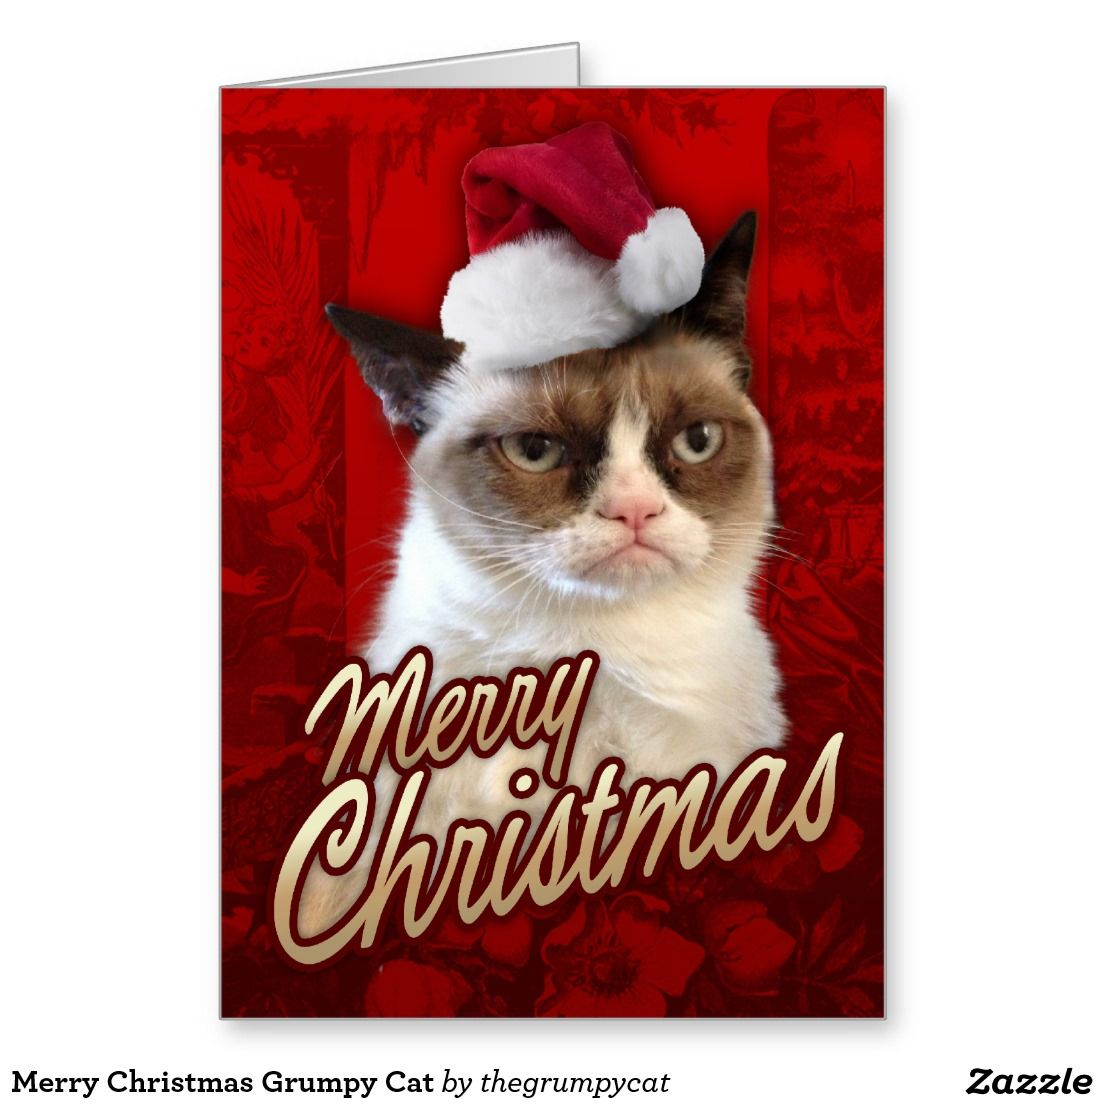 Merry Christmas Grumpy Cat Greeting Card | Simply Christmas Cards ...